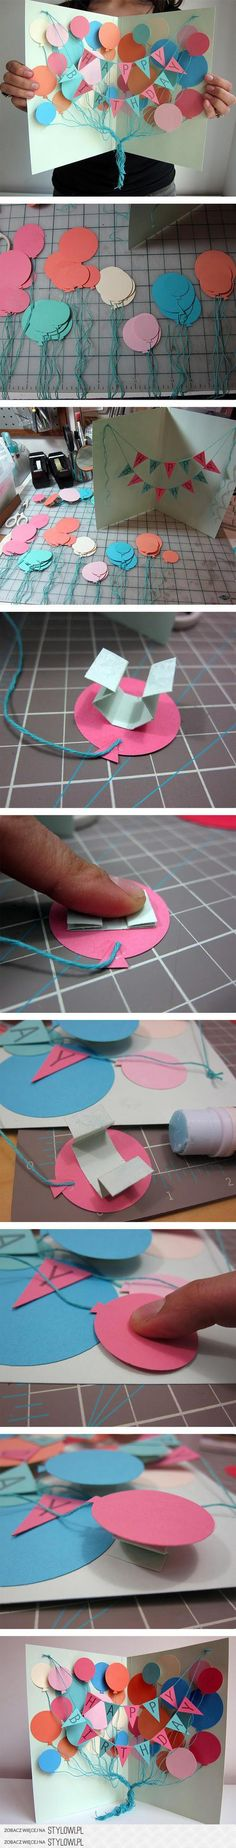 Awesome DIY Birthday Card - A Creative, Meaningful and Cheap DIY Gift for Friend. Awesome DIY Birthday Card - A Creative, Meaningful and Cheap DIY Gift for Friends and Family. Kids Crafts, Diy And Crafts, Craft Projects, Paper Crafts, Paper Glue, Tarjetas Diy, Diy Y Manualidades, Crafty Craft, Diy Cards